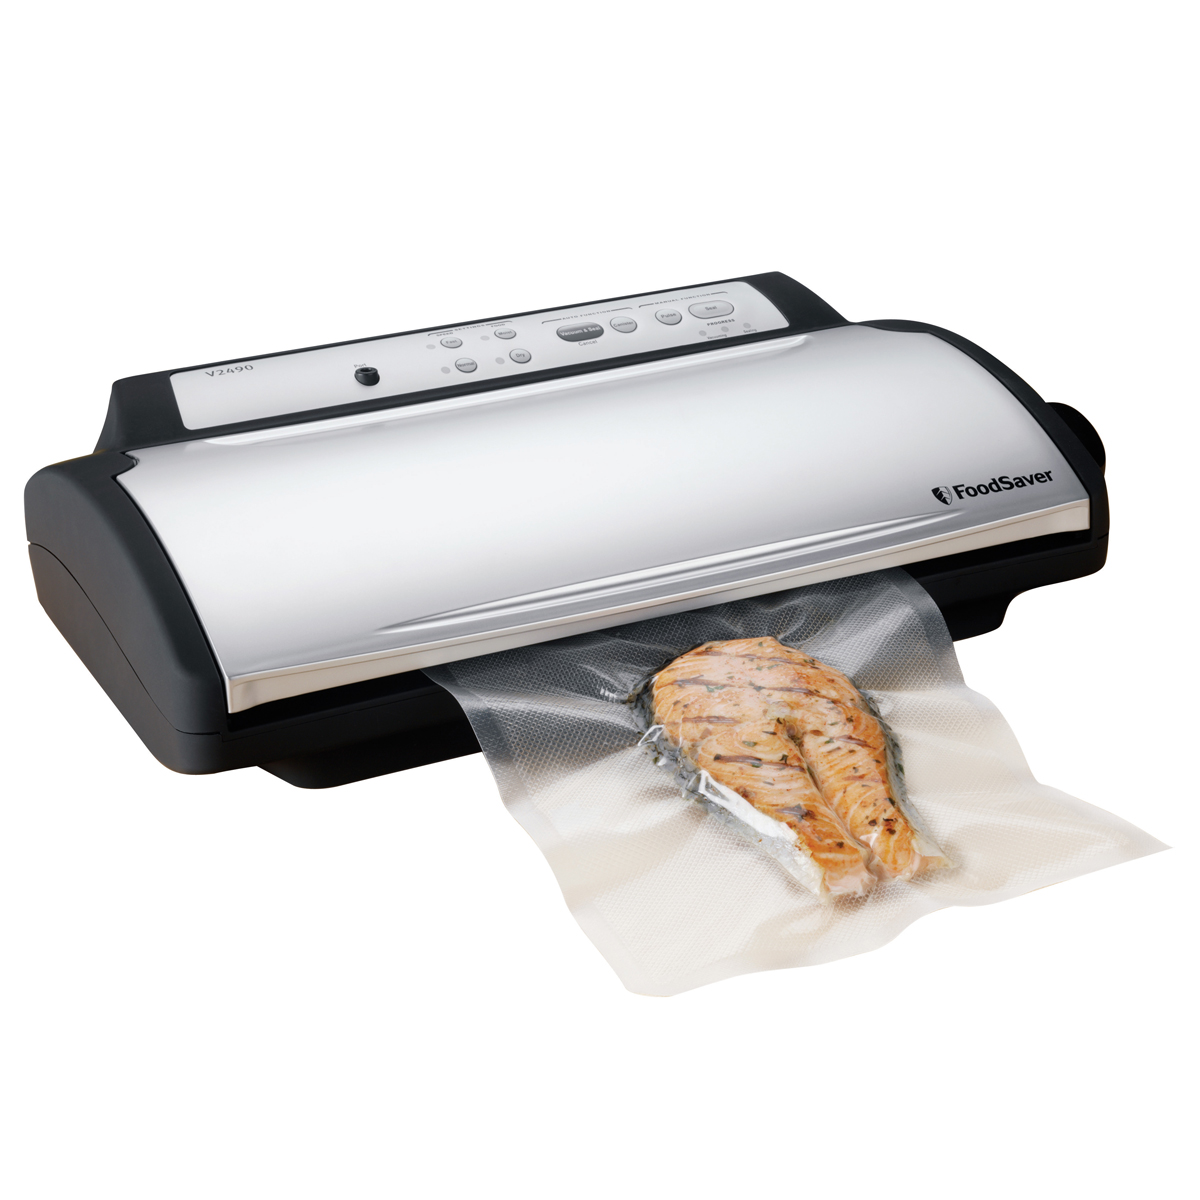 11 rows · This food saver also works well with dry foods. Because it seals so securely, foods sealed .